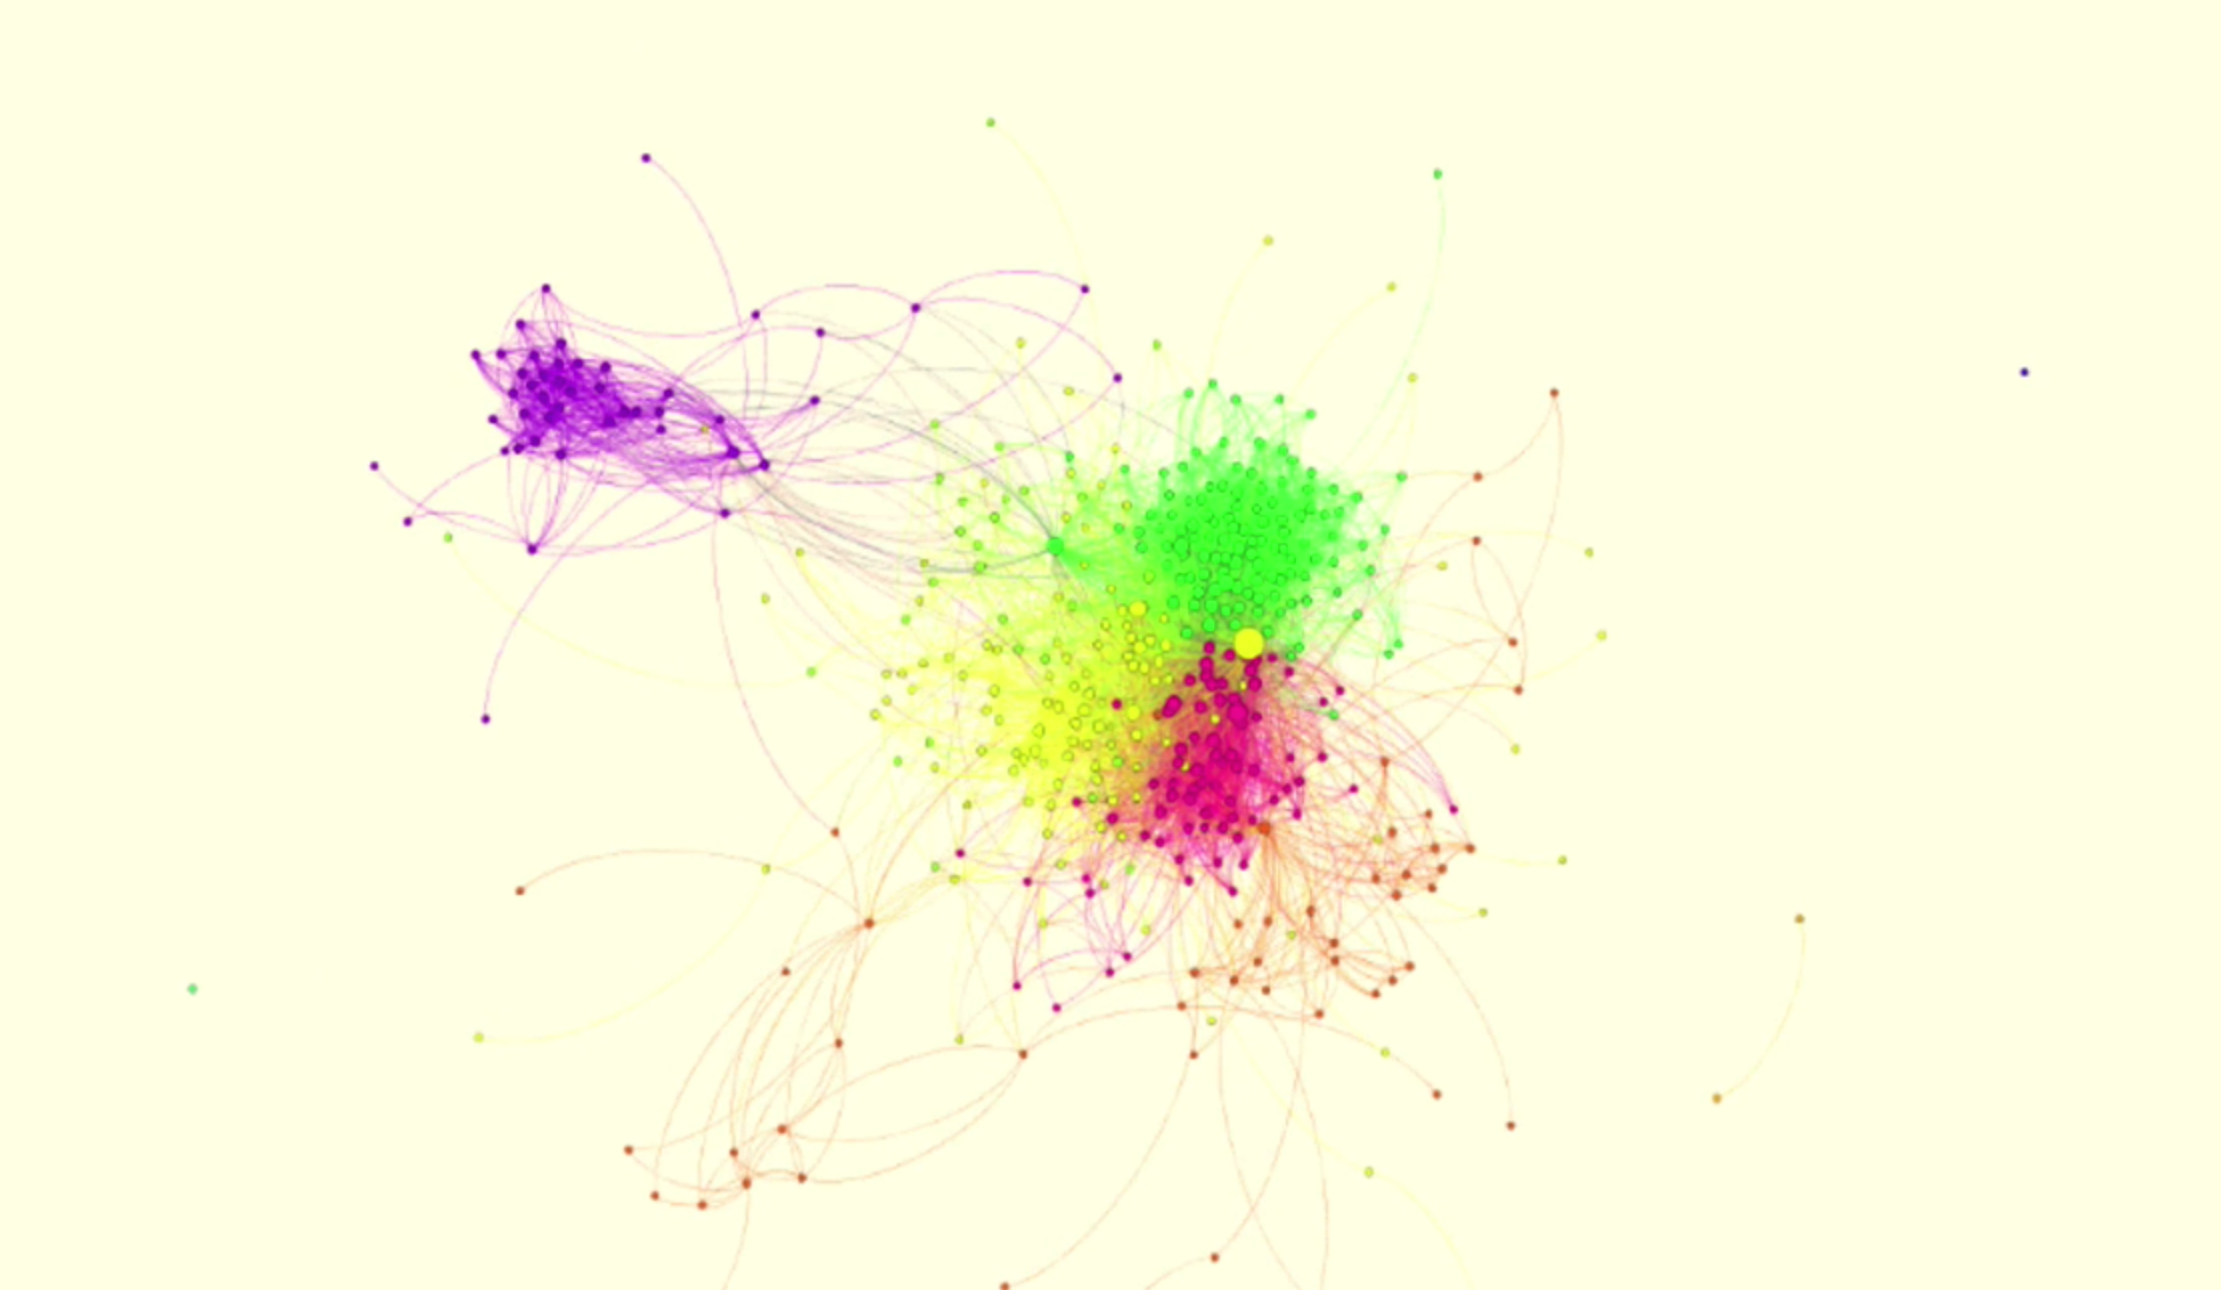 Network Visualization and Analysis with Gephi